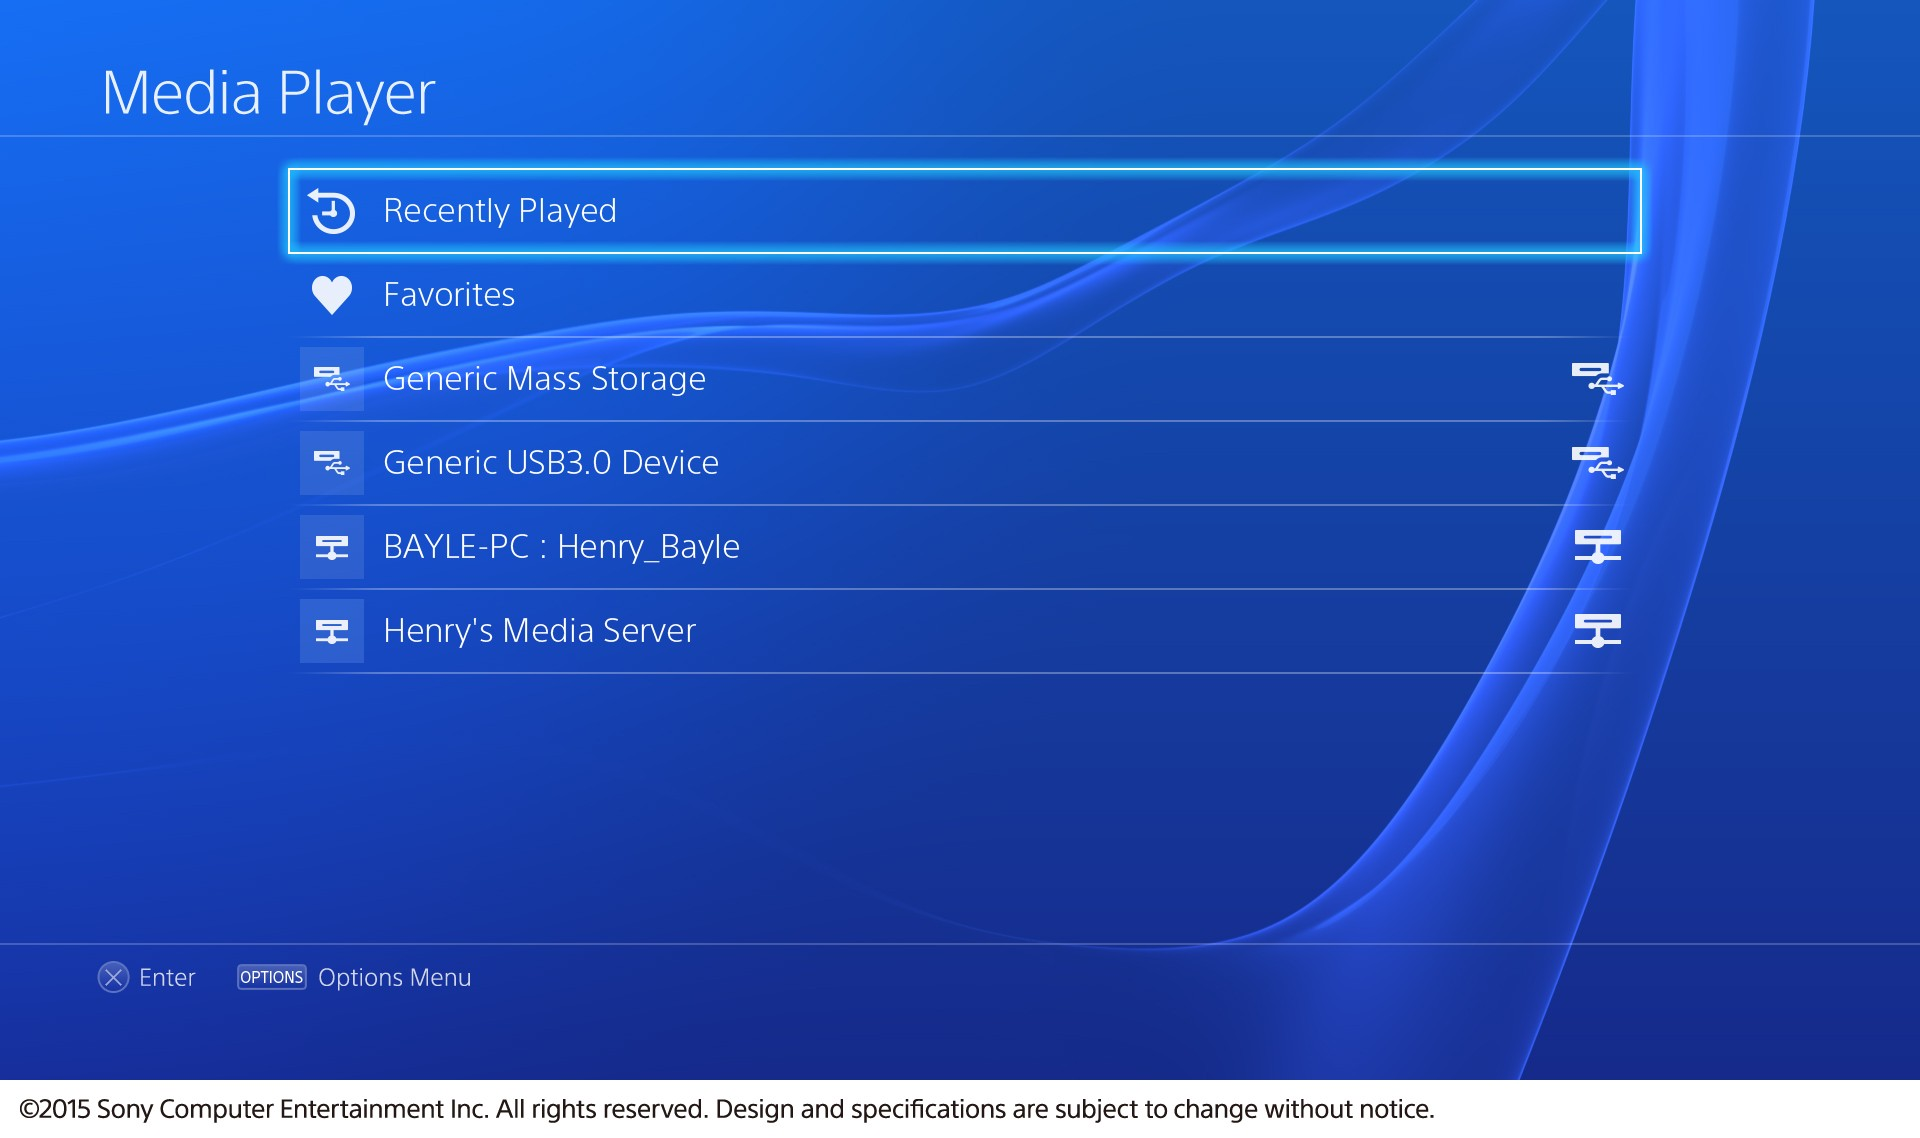 PS4 Media Player App Now Available for Download, Supports MKV, AVI, MP4